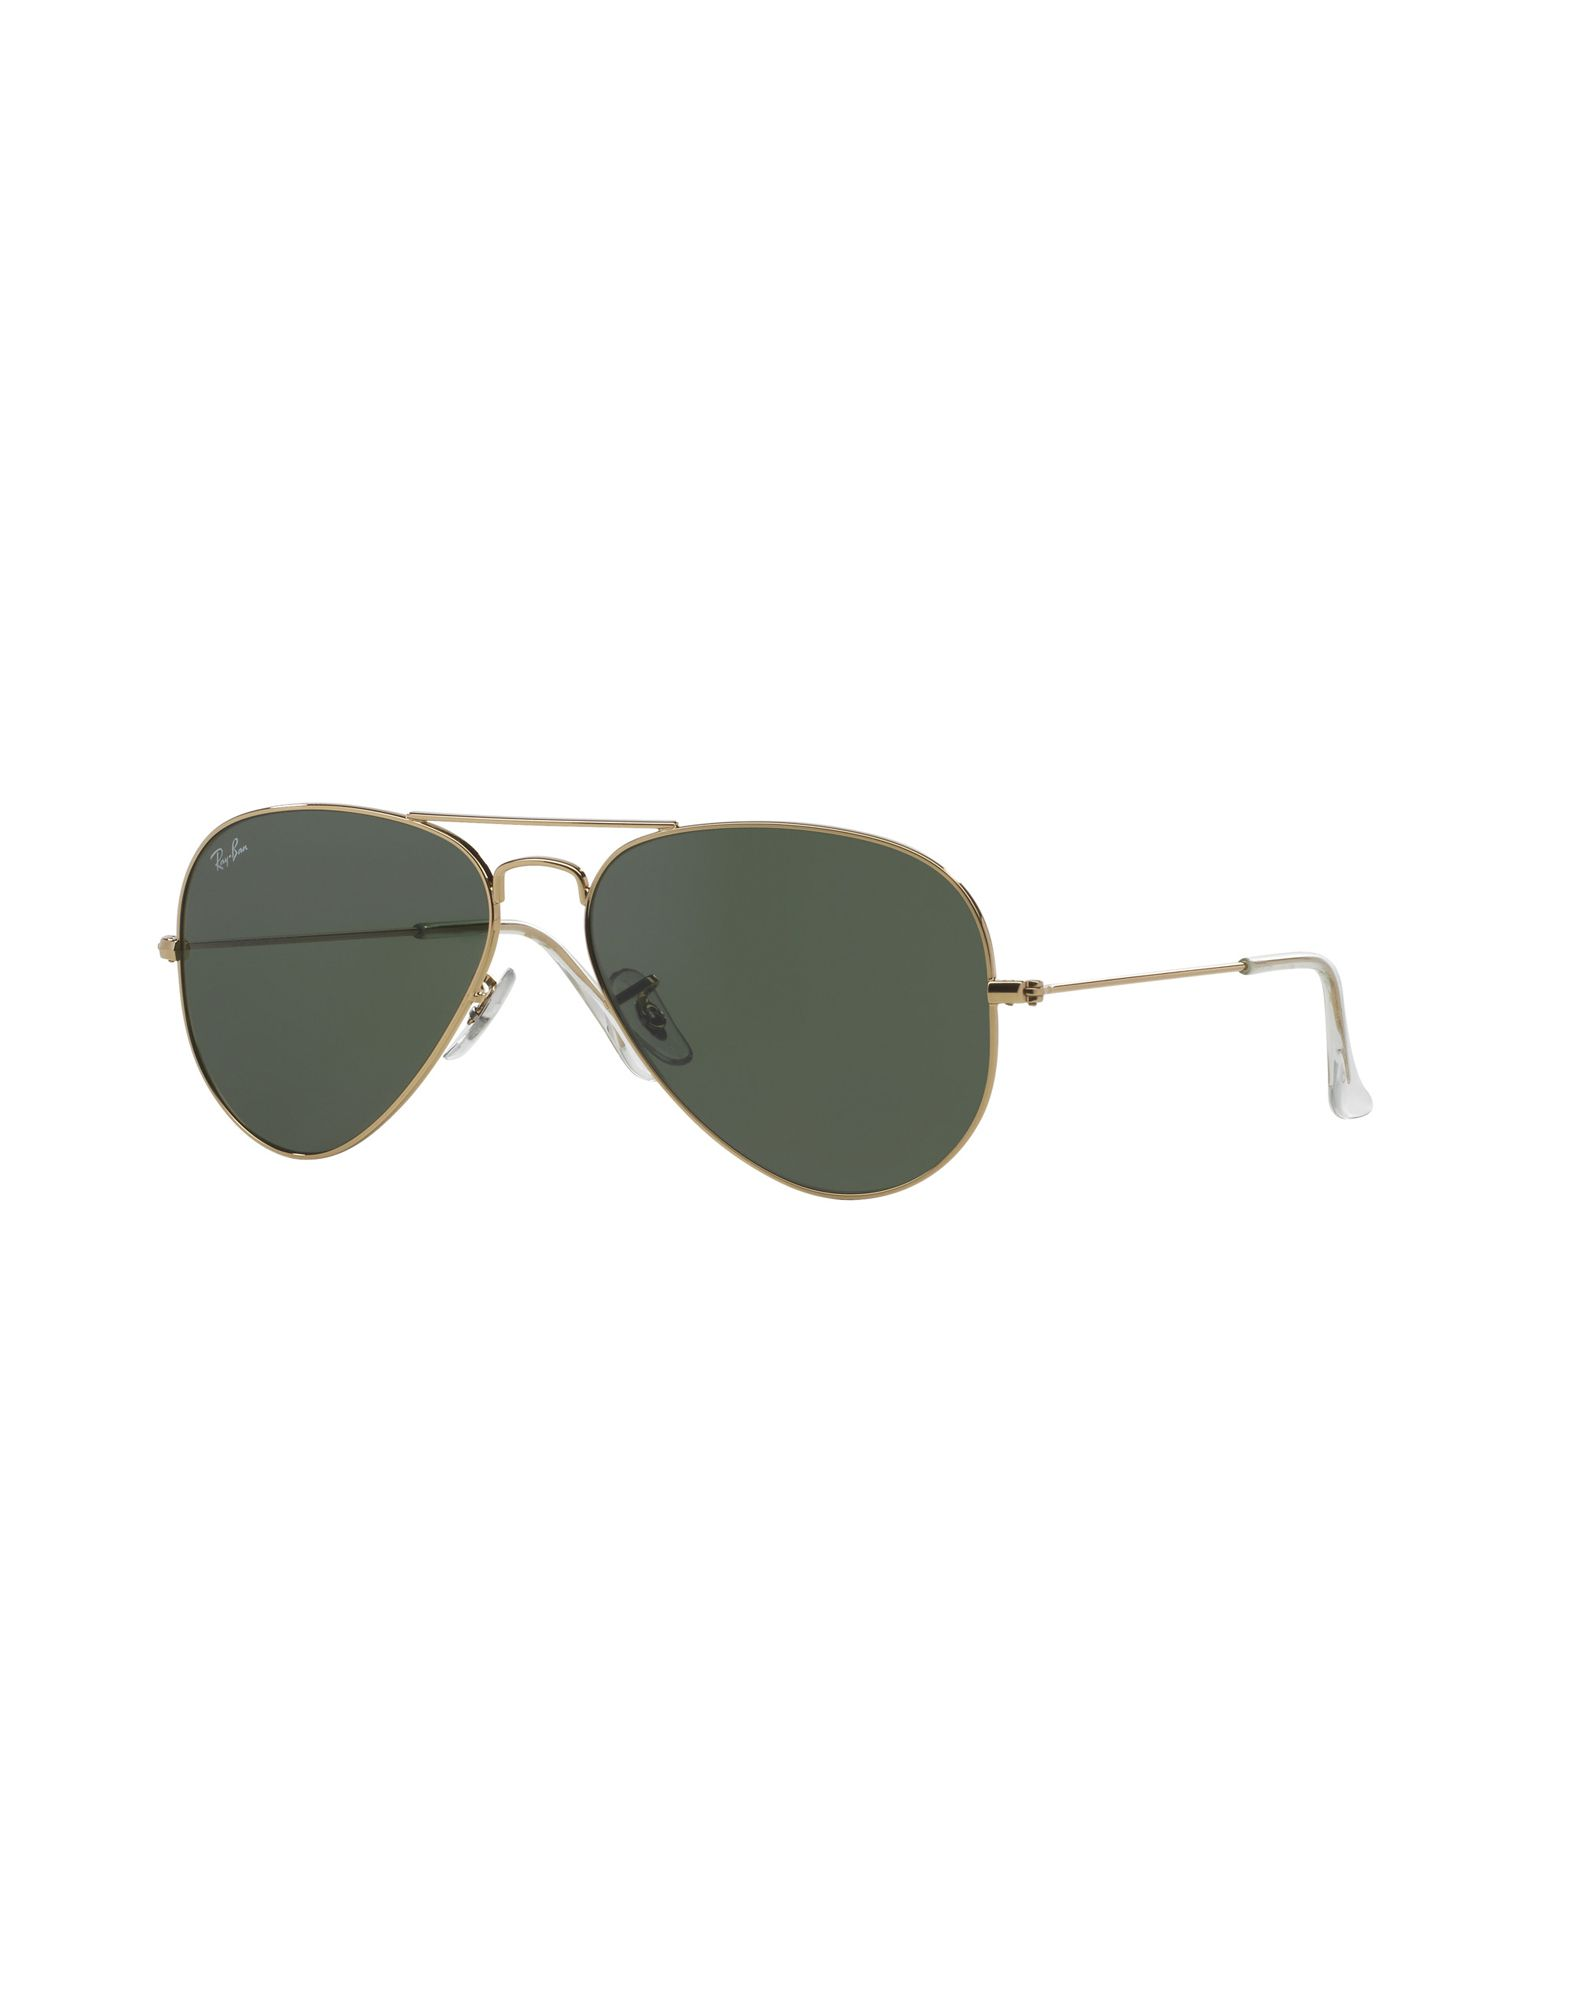 Occhiali Da Sole Ray-Ban Rb3025 Original Aviator - Uomo - Acquista online su